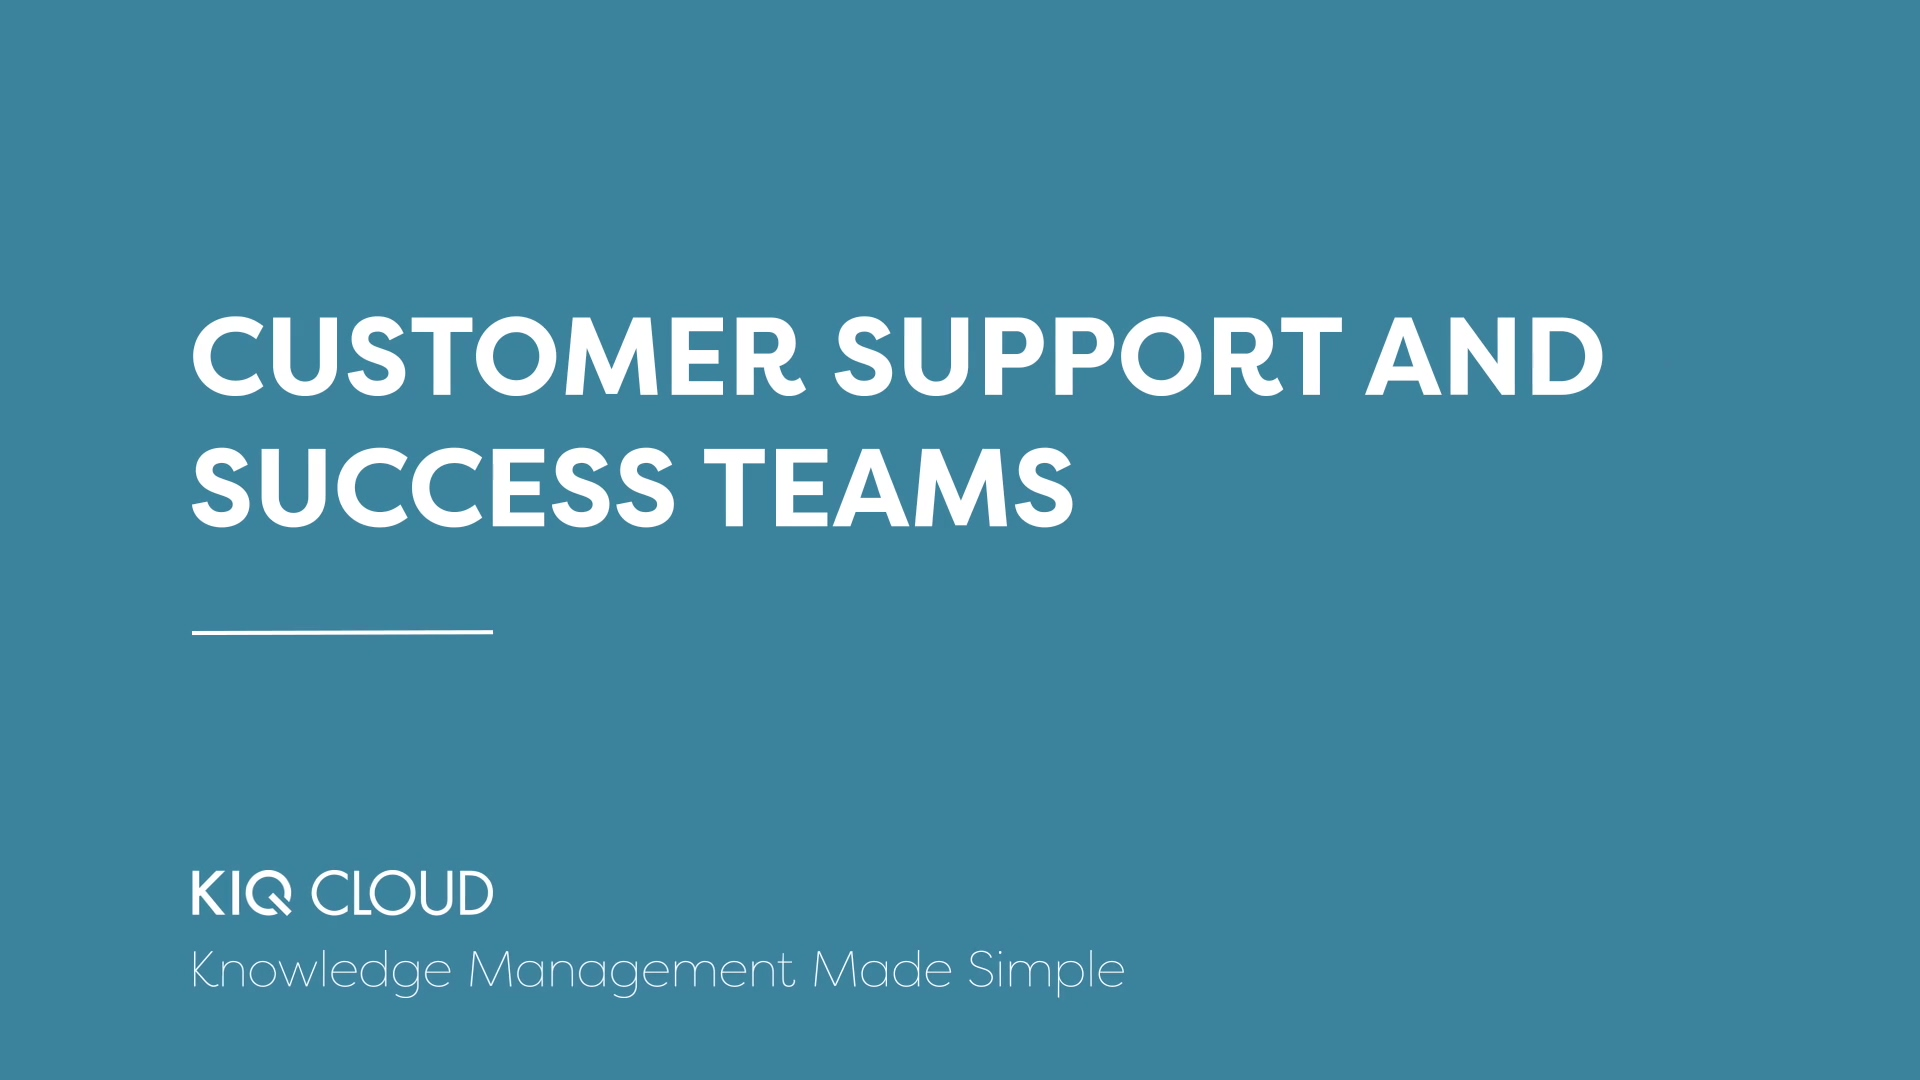 1. Customer support and success teams